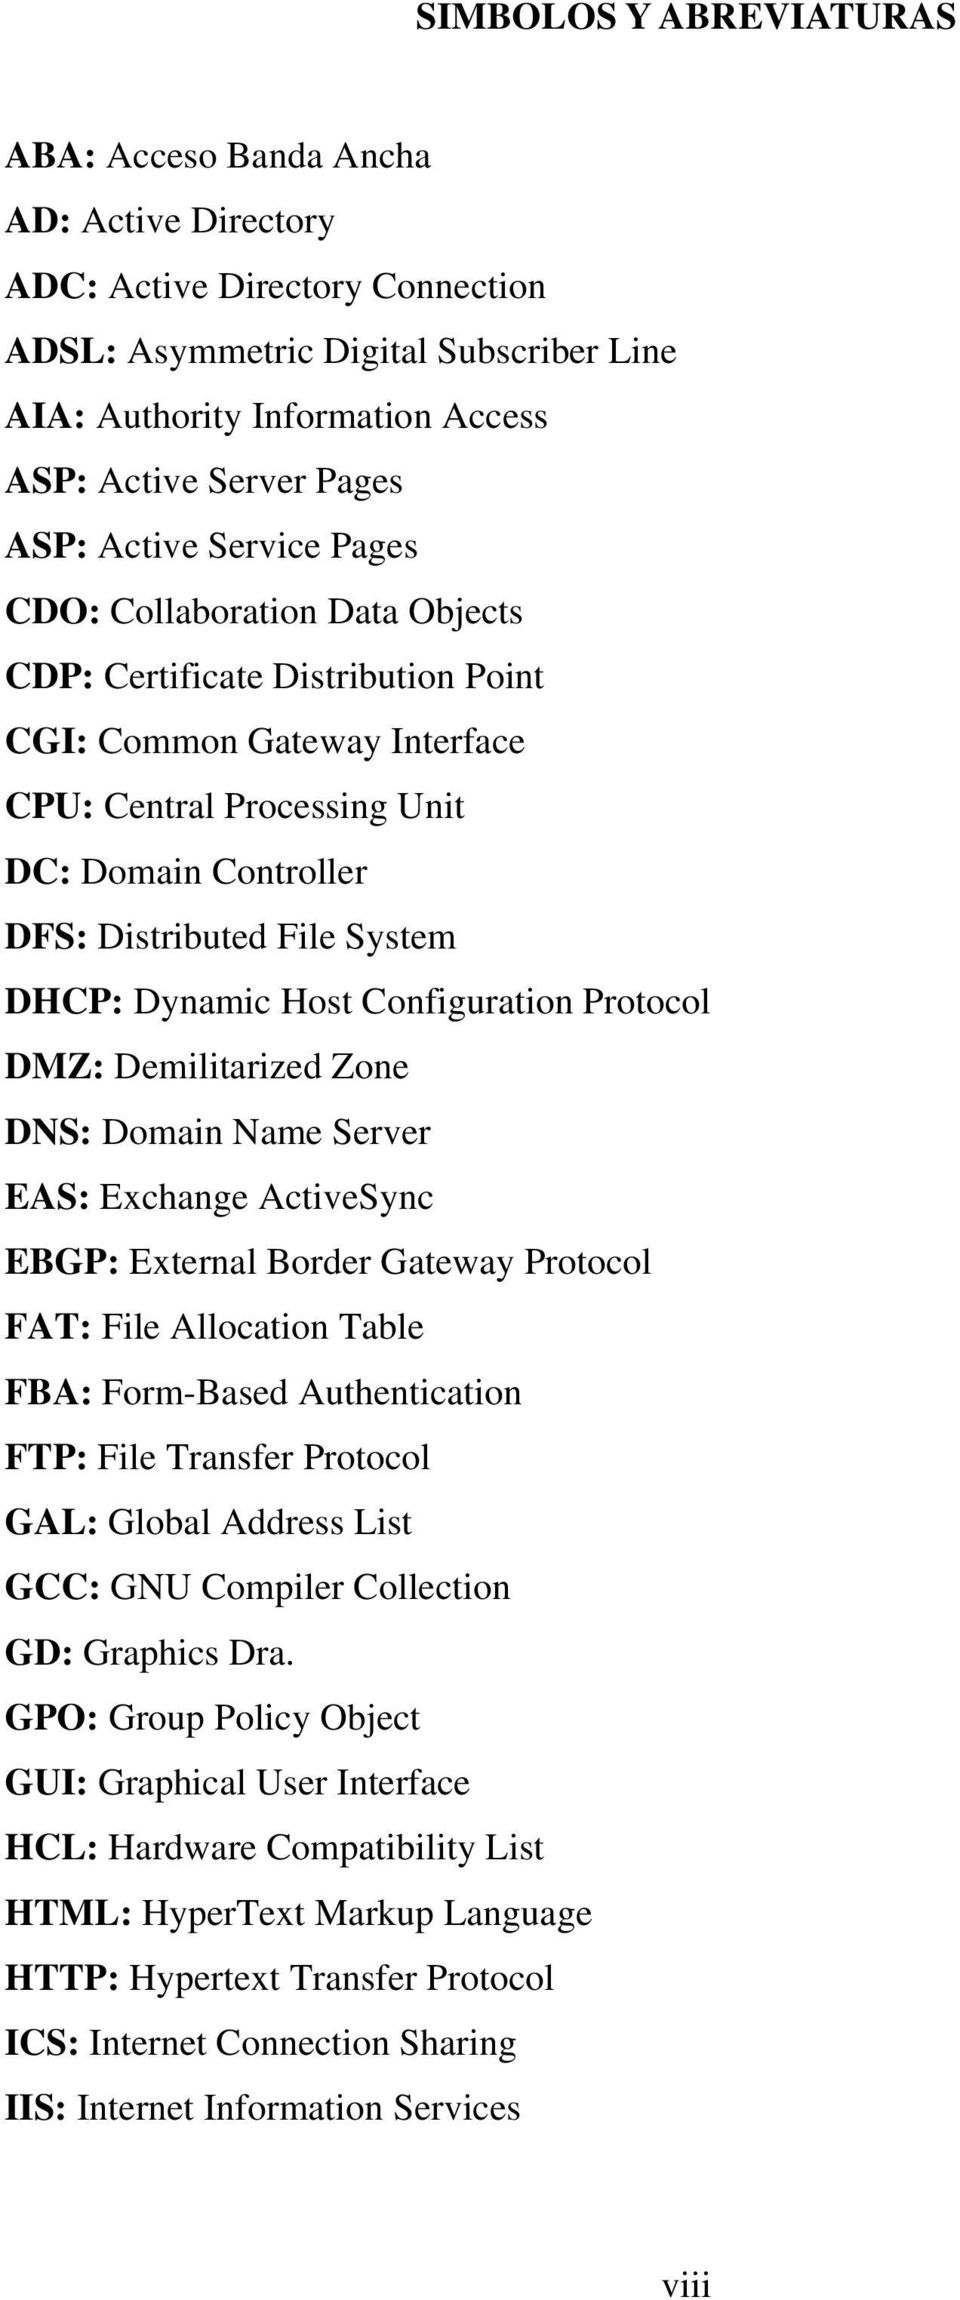 File System DHCP: Dynamic Host Configuration Protocol DMZ: Demilitarized Zone DNS: Domain Name Server EAS: Exchange ActiveSync EBGP: External Border Gateway Protocol FAT: File Allocation Table FBA: